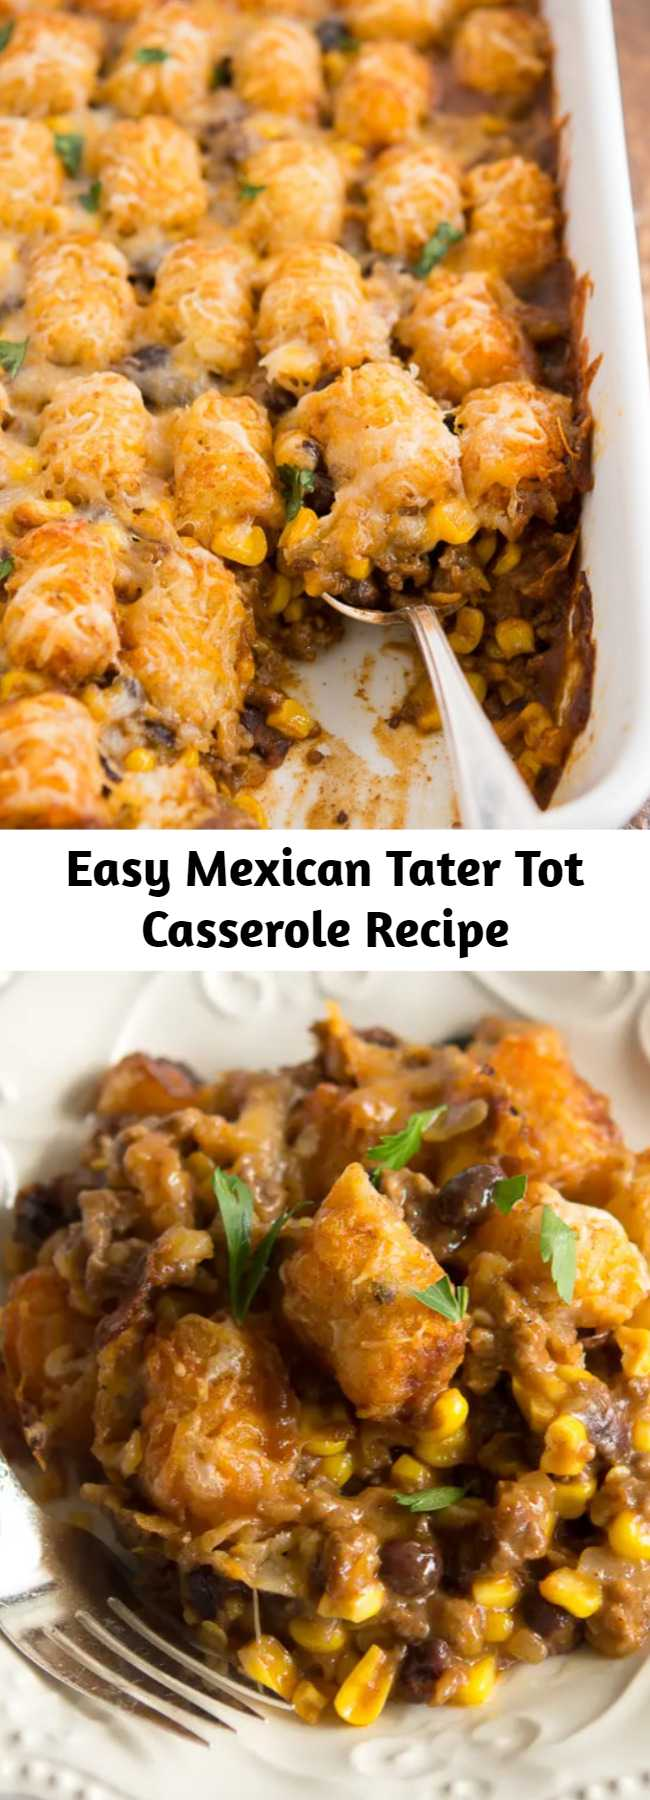 Easy Mexican Tater Tot Casserole Recipe - This easy tater tot casserole will please everyone in your crew---even picky kids! This delicious taco-inspired tater tot casserole recipe is chock-full of black beans, corn, ground beef and a whole lot of flavor.